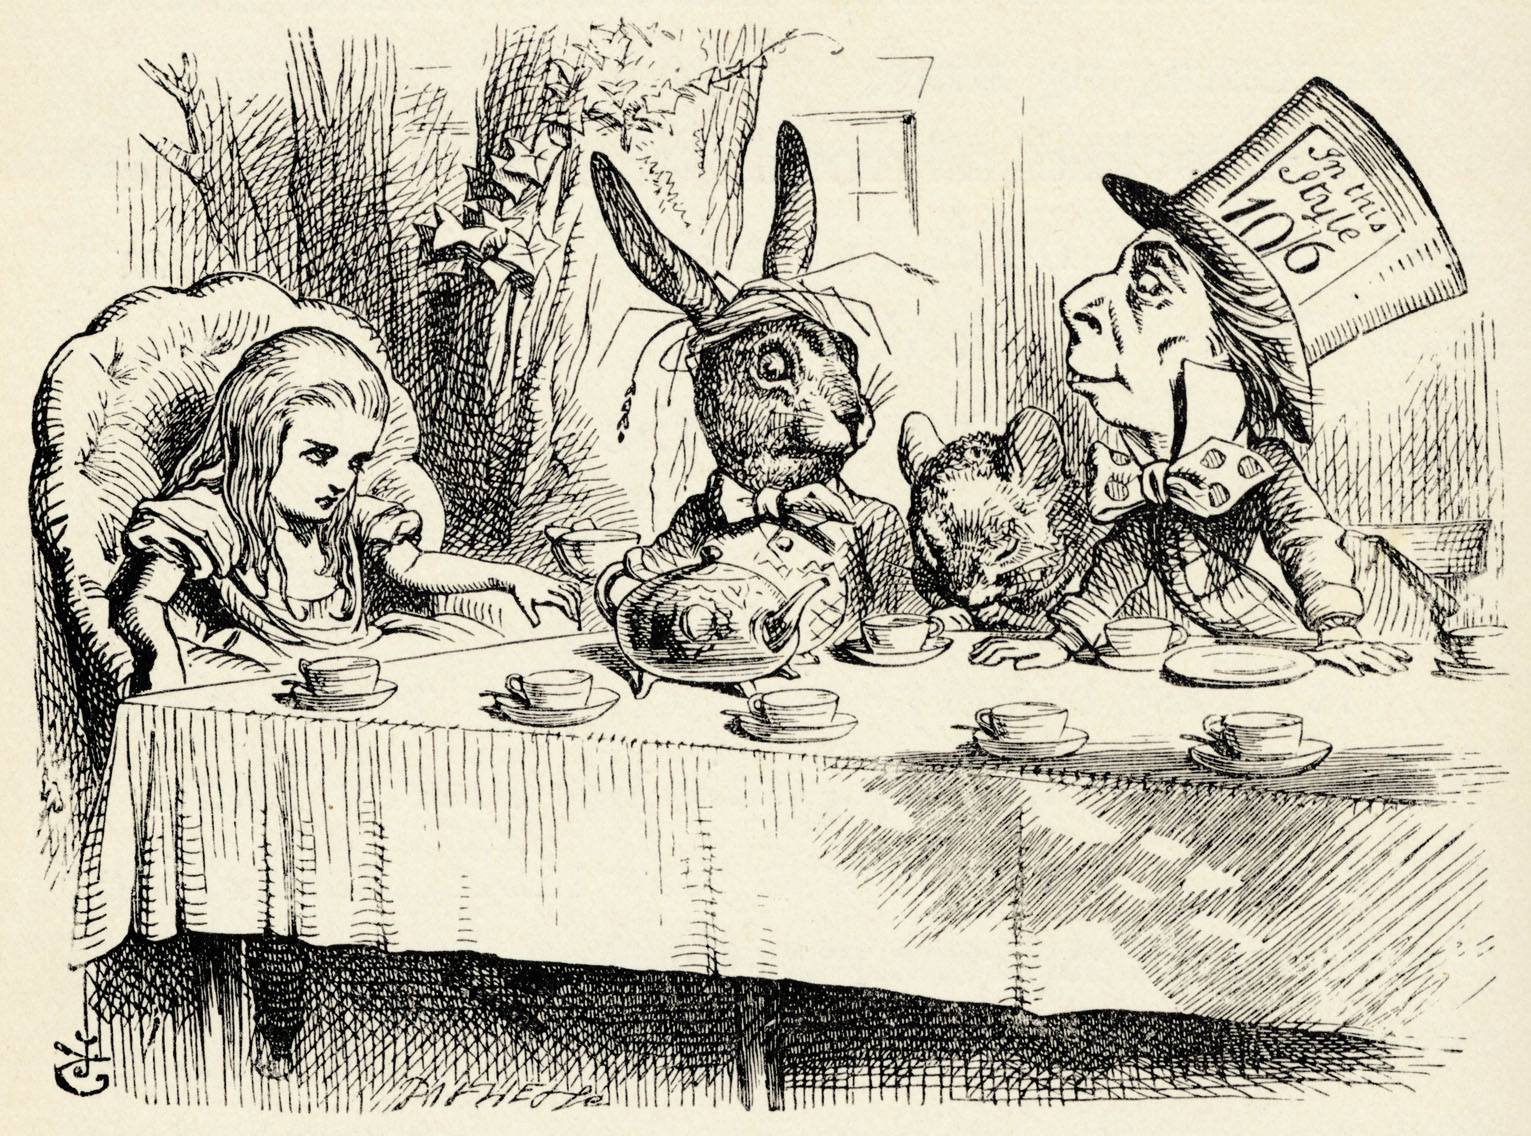 Alice in Wonderland - the Mad Hatter's Tea Party - from the book by Lewis Carroll (Charles Lutwidge Dodgson), English children's writer and mathematician 27 January 1832- 14 January 1898. First published 1865. Illustrations by John Tenniel 1820-1914.  (Photo by Culture Club/Getty Images)